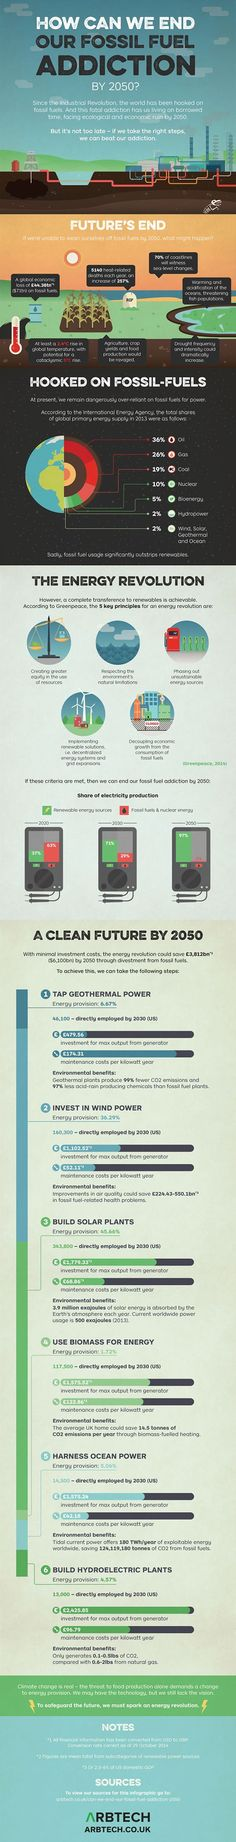 INFOGRAPHIC: Could we end our fossil fuel addiction by 2050? | Inhabitat - Sustainable Design Innovation, Eco Architecture, Green Building